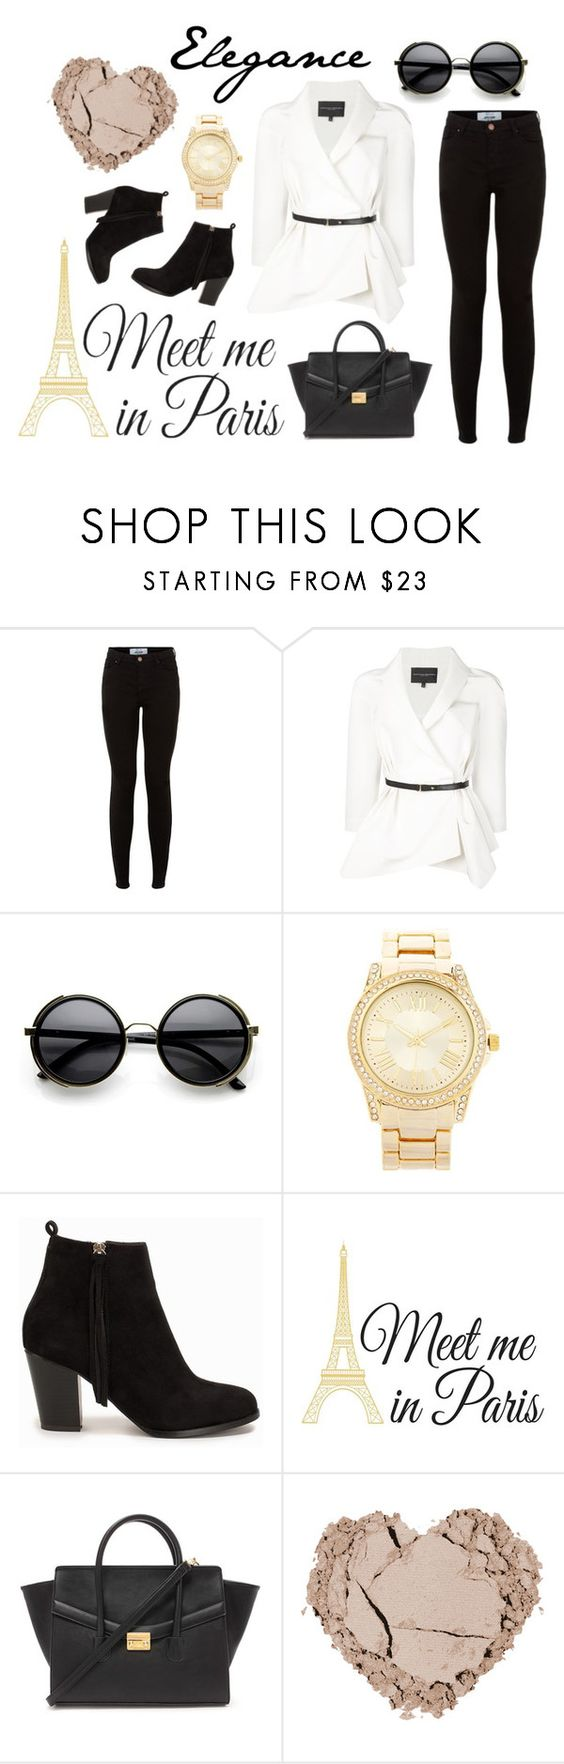 """""""Meet me in Paris"""" by aurorabc on Polyvore featuring Carolina Herrera, Forever 21, Nly Shoes, WallPops, women's clothing, women, female, woman, misses and juniors"""